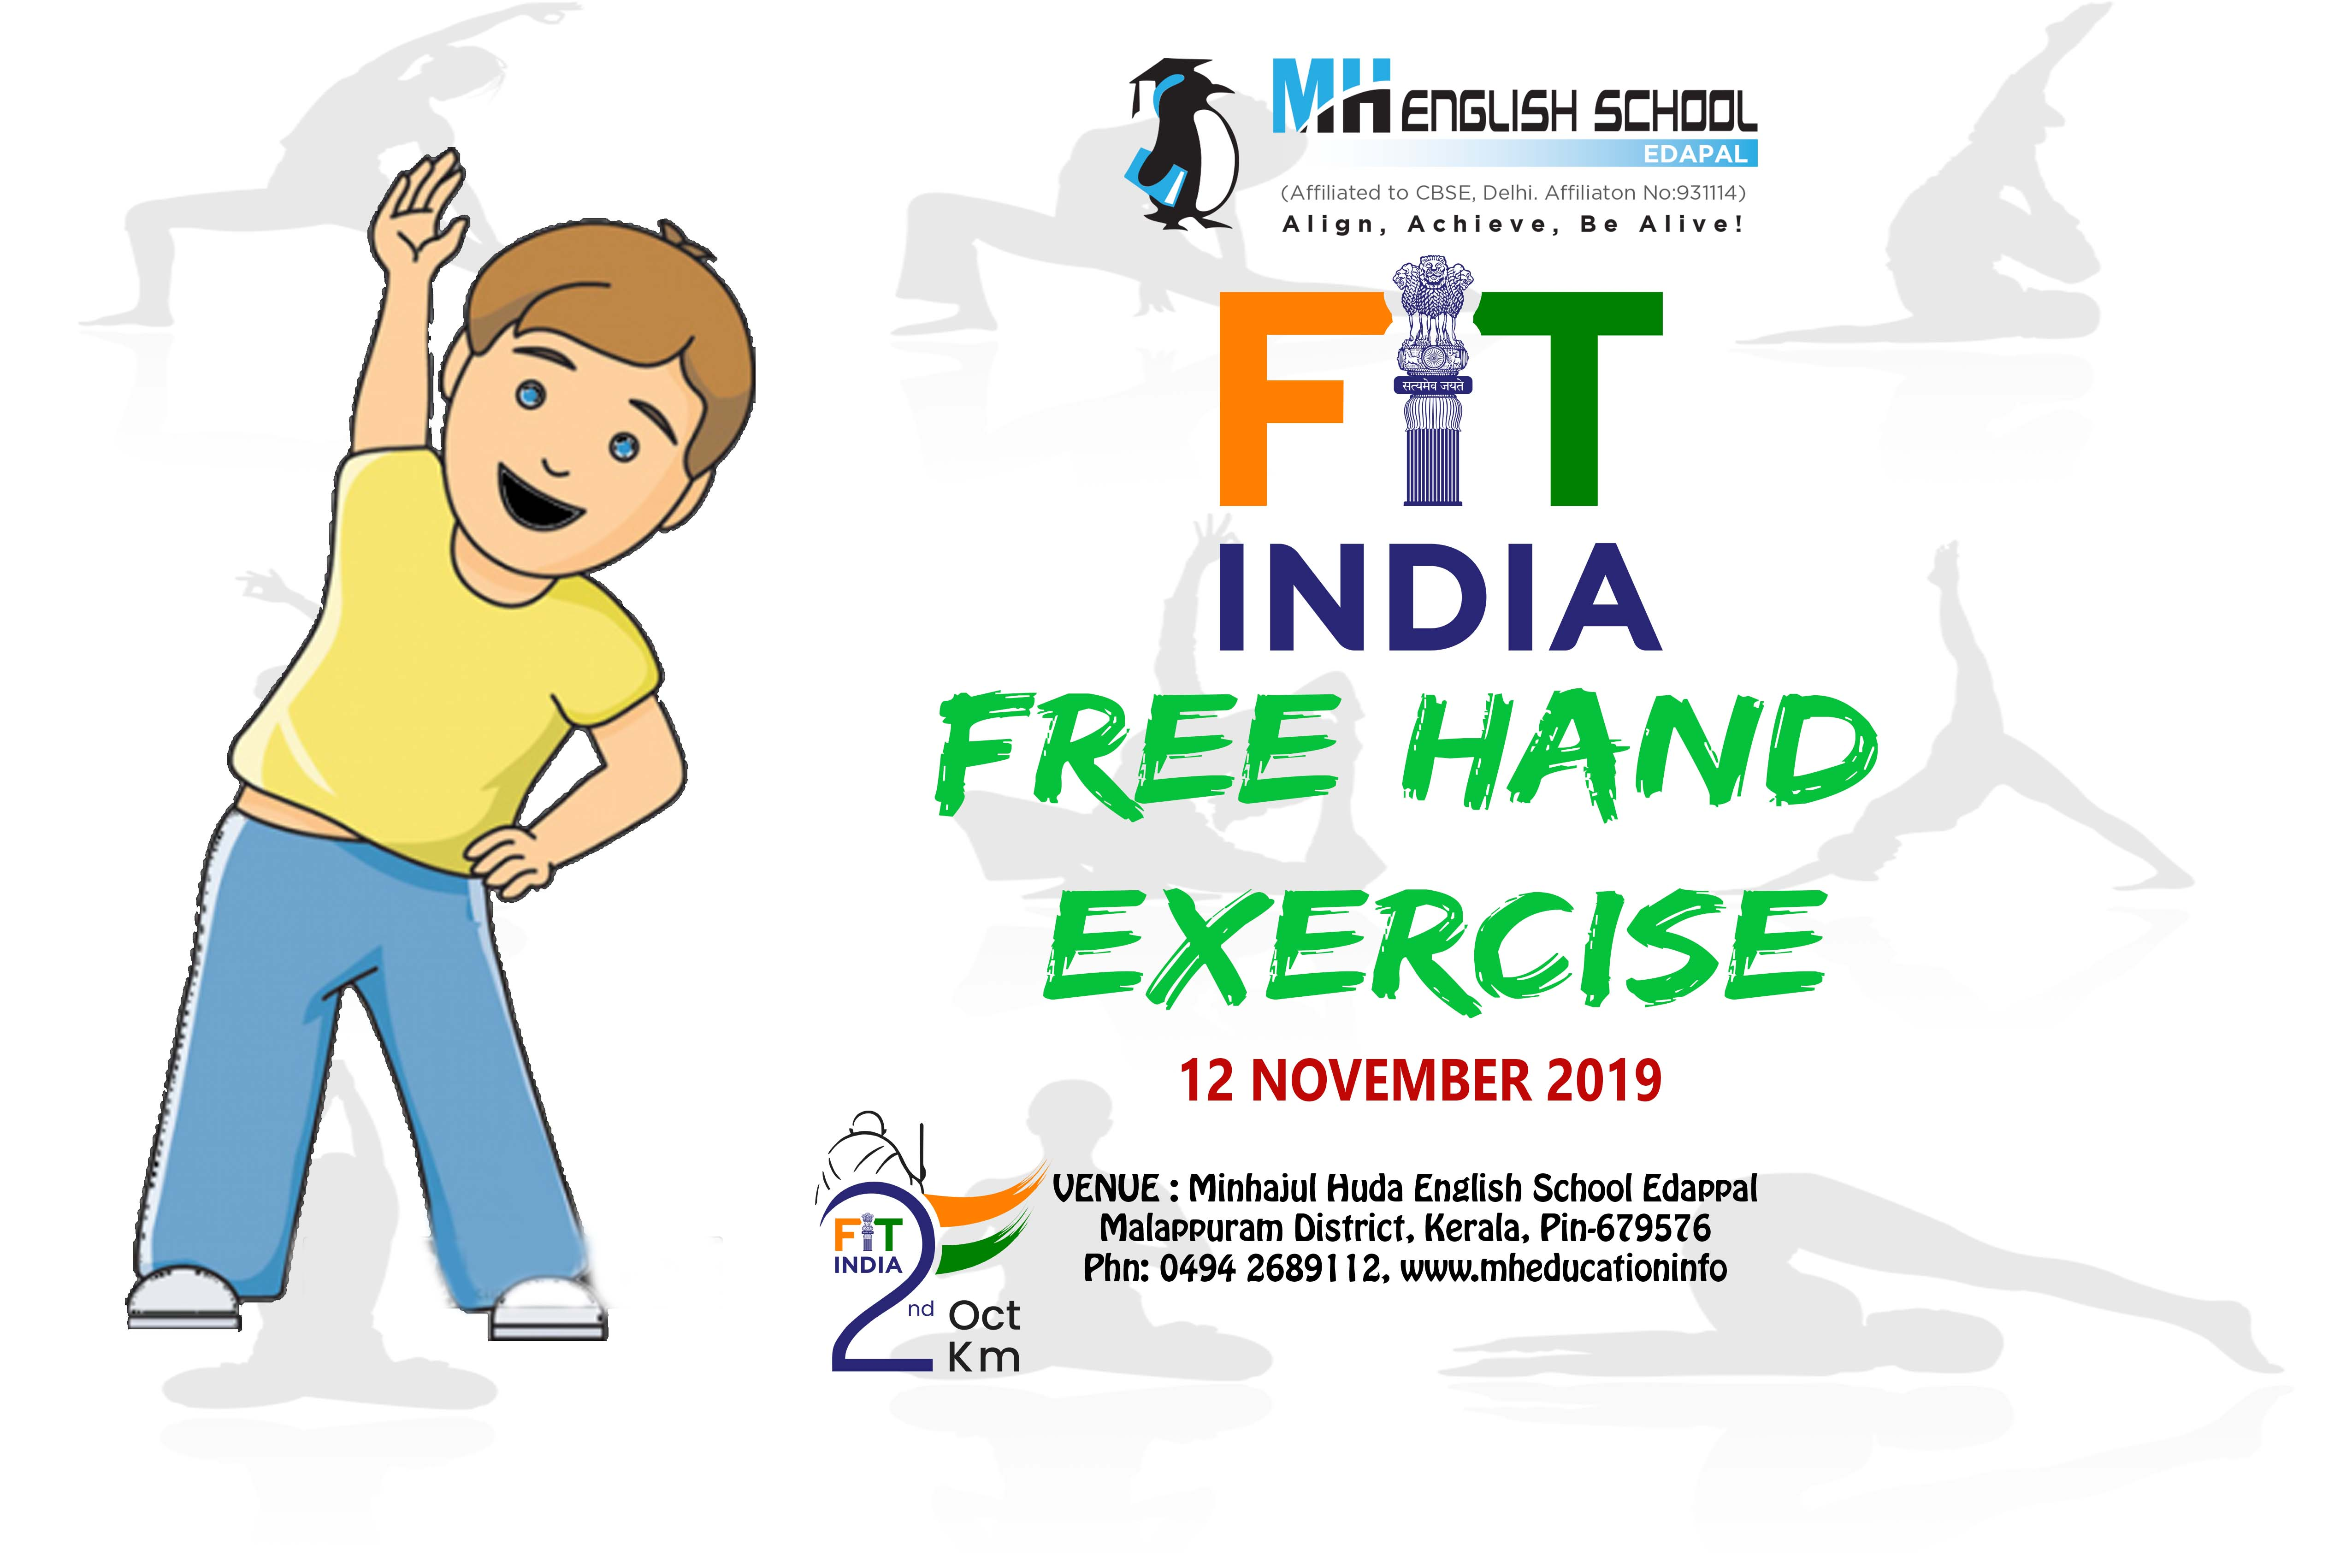 Morning Assembly Free Hands Exercise For All Fit India